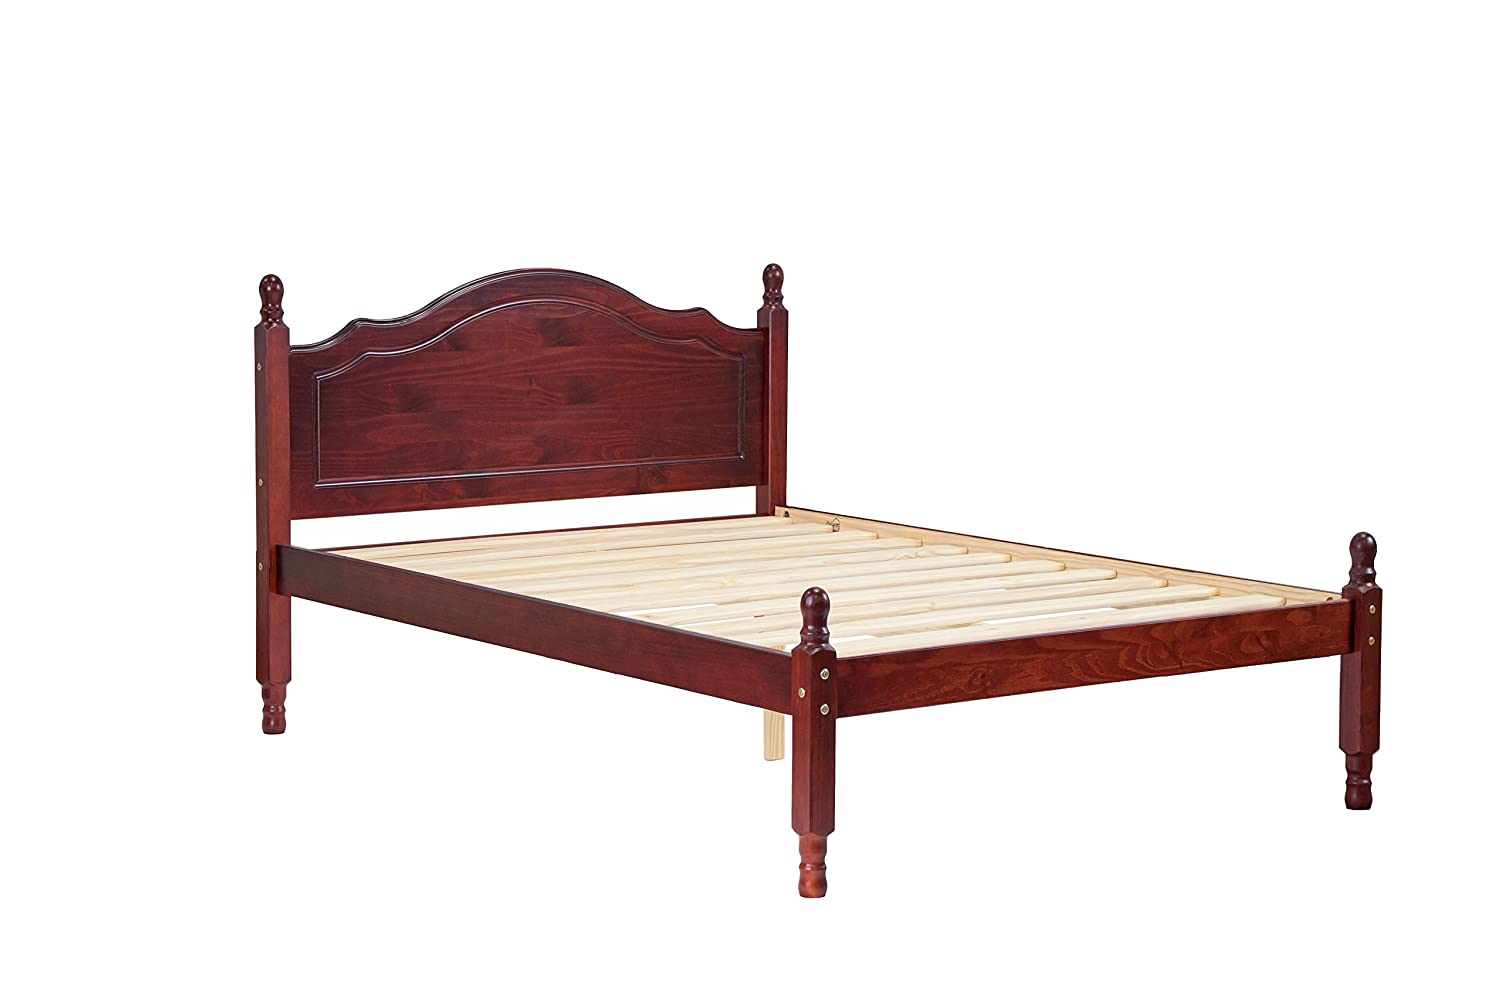 100 Solid Wood Reston Panel Headboard Platform Bed by Palace Imports, Full Size, Mahogany Color, 12 Slats Included. Optional Trundle, Drawers, Rail Guard Sold Separately. Requires Assembly